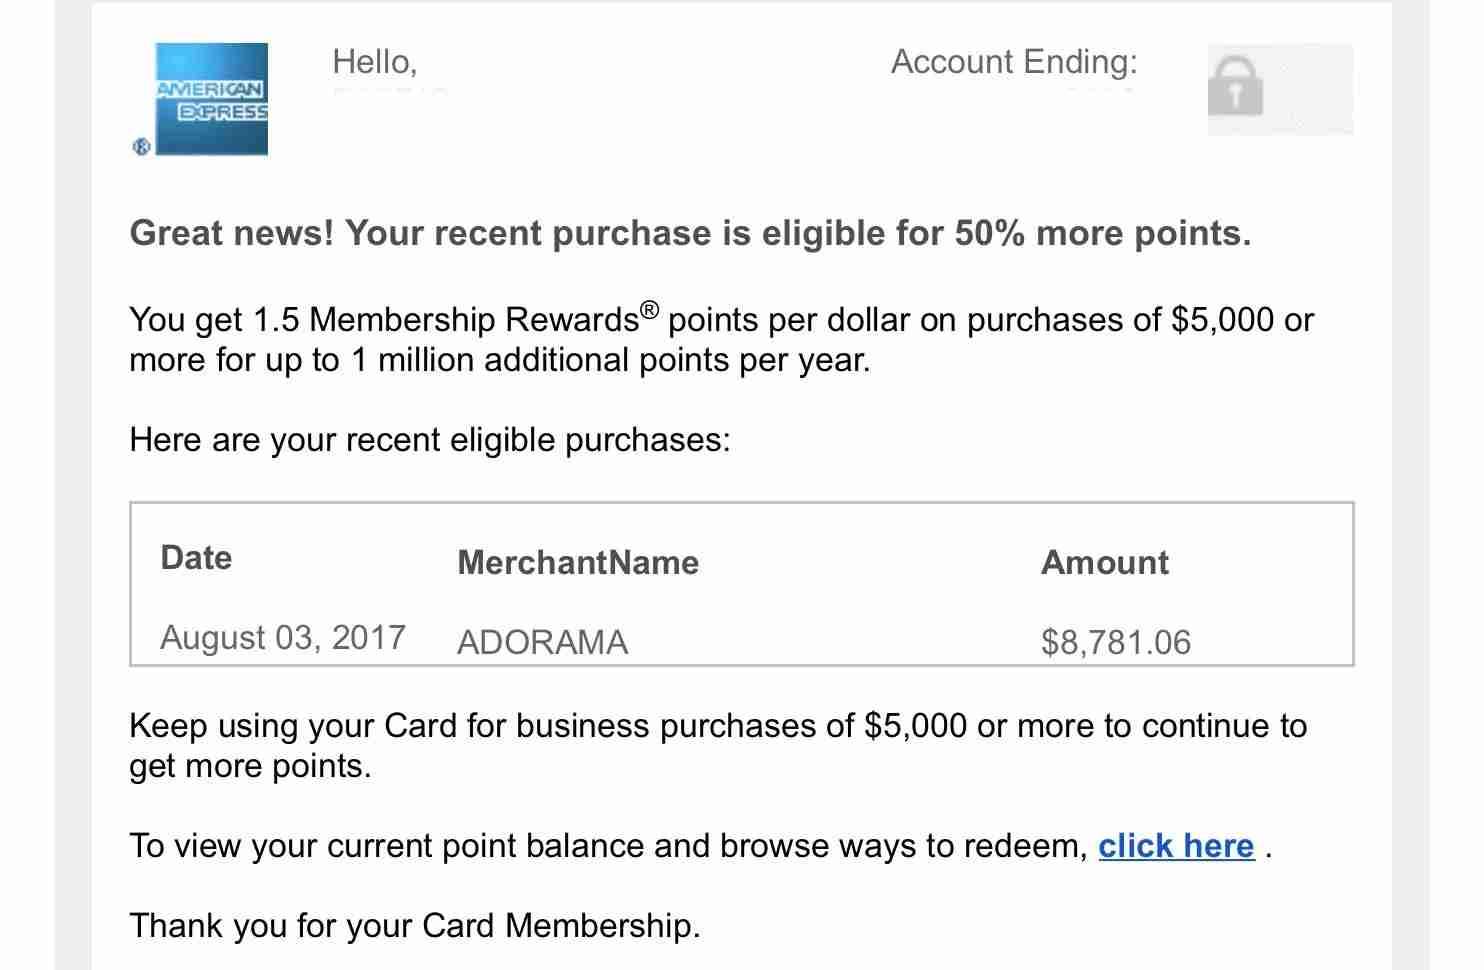 The congratulations email from Amex told me I would receive the 50% bonus - but not for the whole amount I had expected.